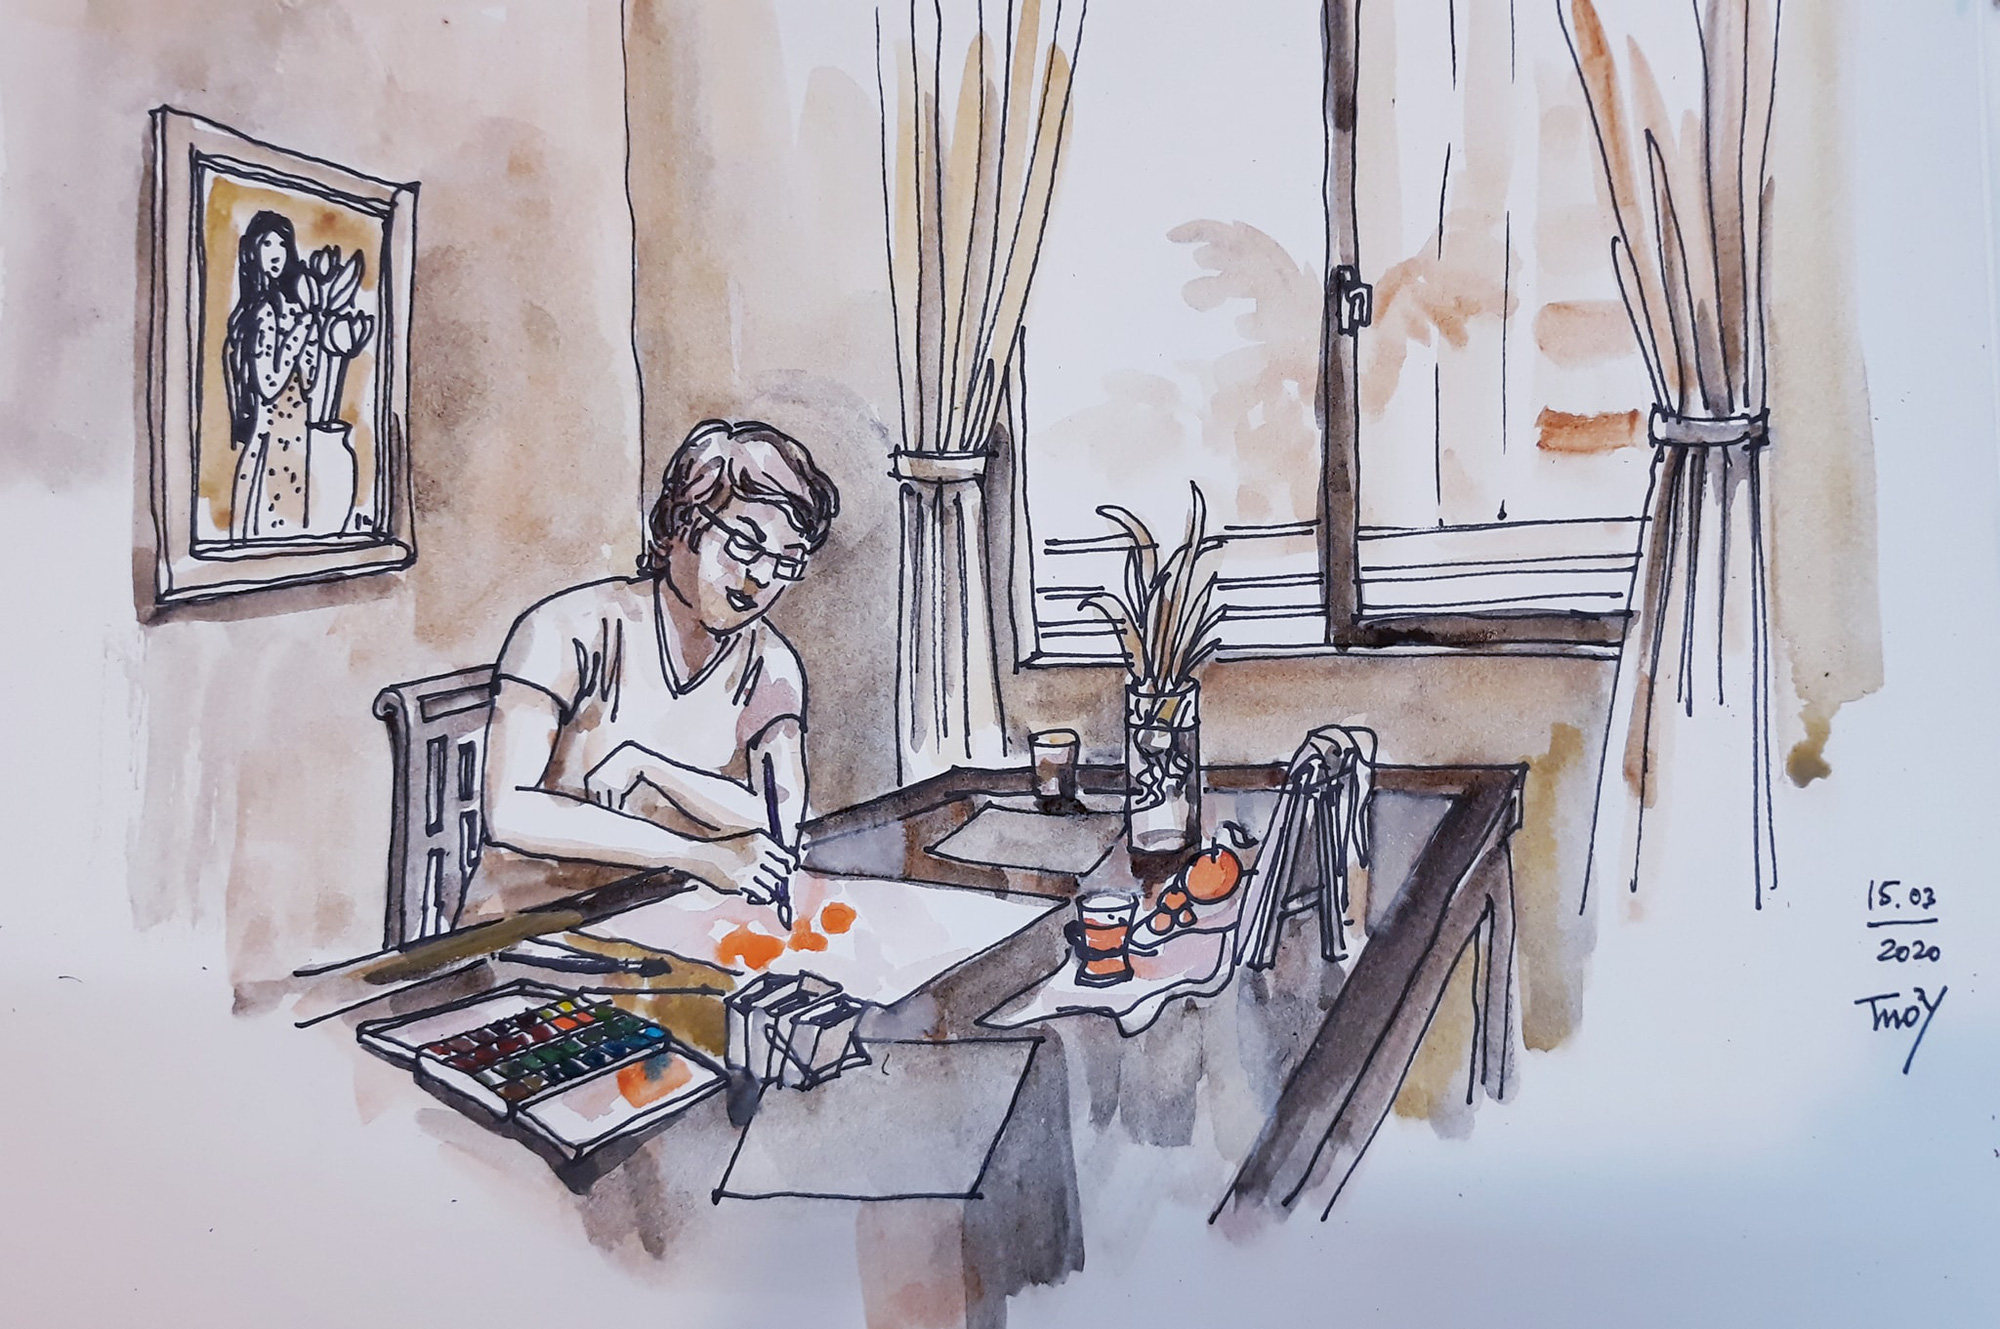 'When the nation needs you to stay still' by Tran Thi Thanh Thuy.